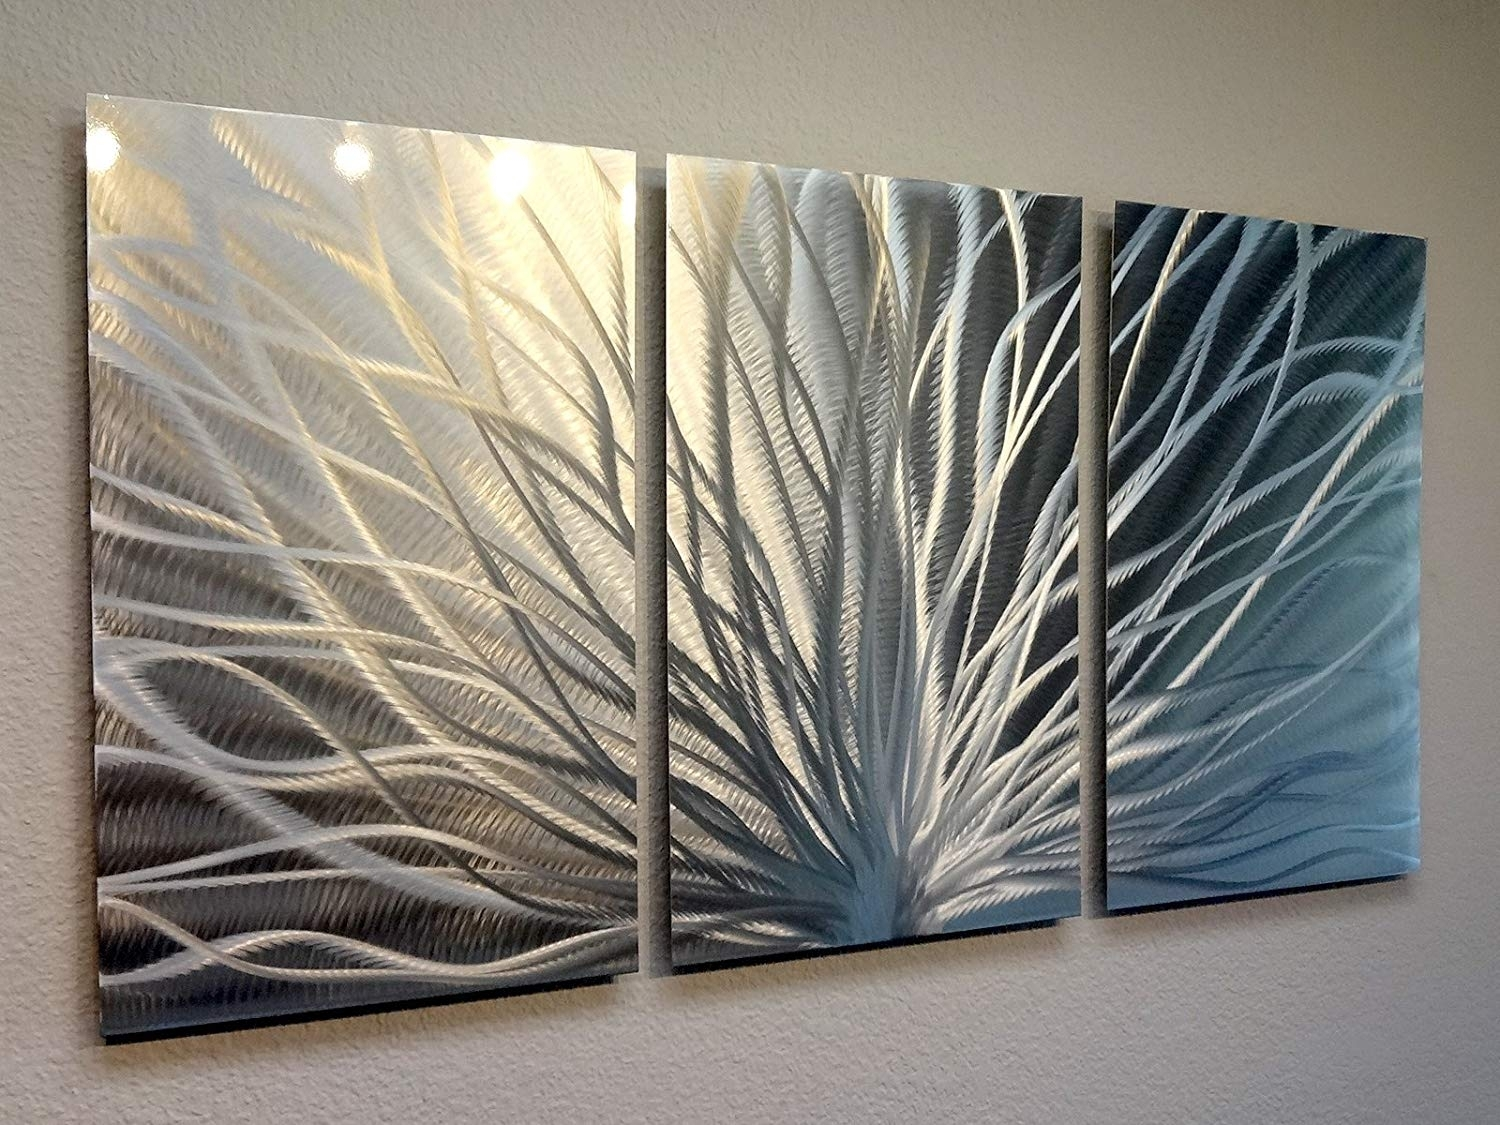 Amazon: Miles Shay Metal Wall Art, Modern Home Decor, Abstract within Metal Wall Art Panels (Image 2 of 20)